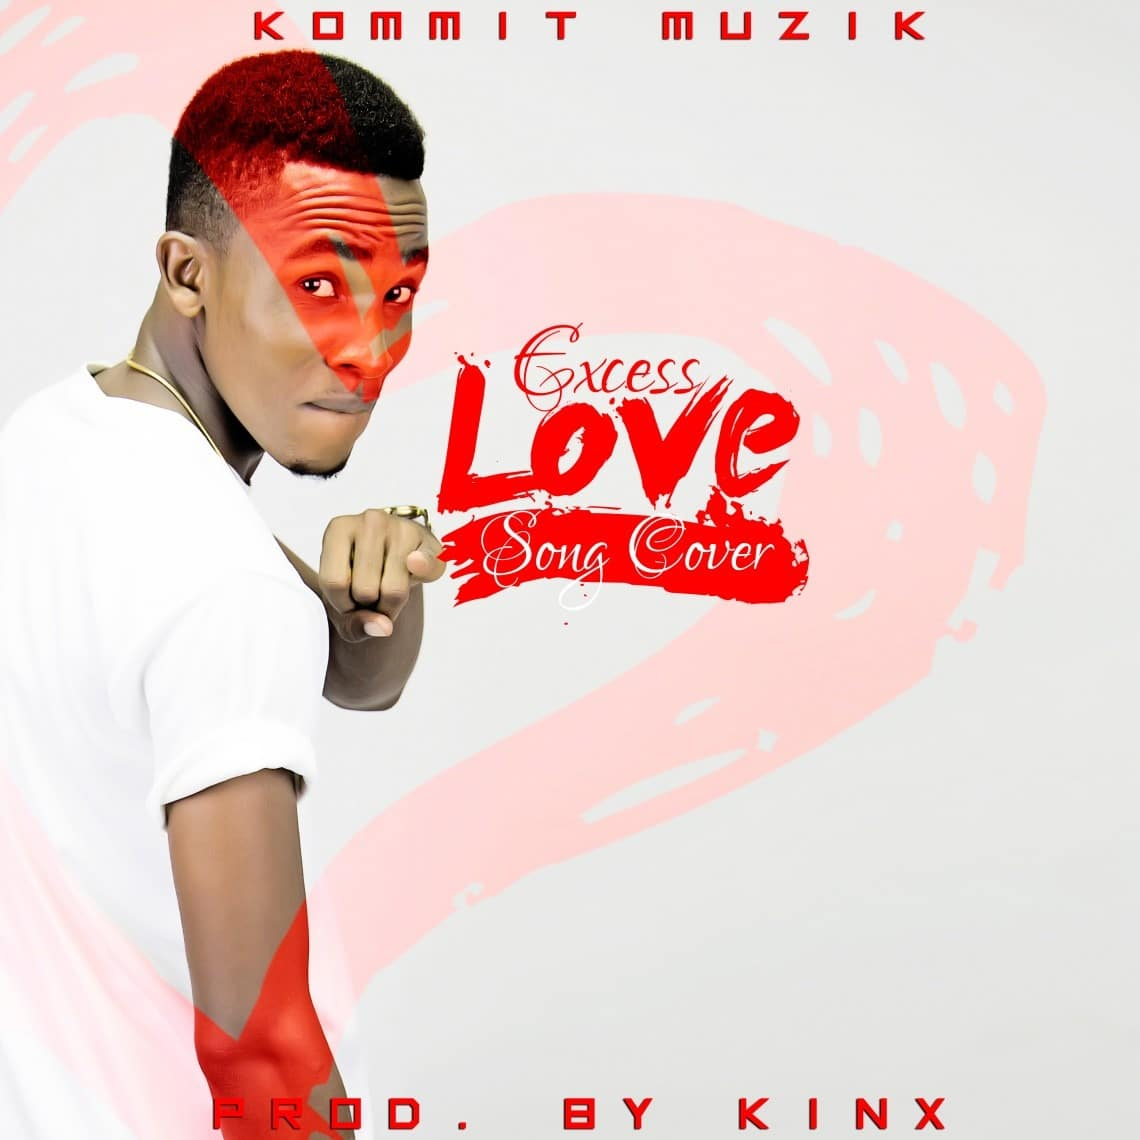 Excess-Love-Afro-beat-Cover-By-Kommit worshippersgh